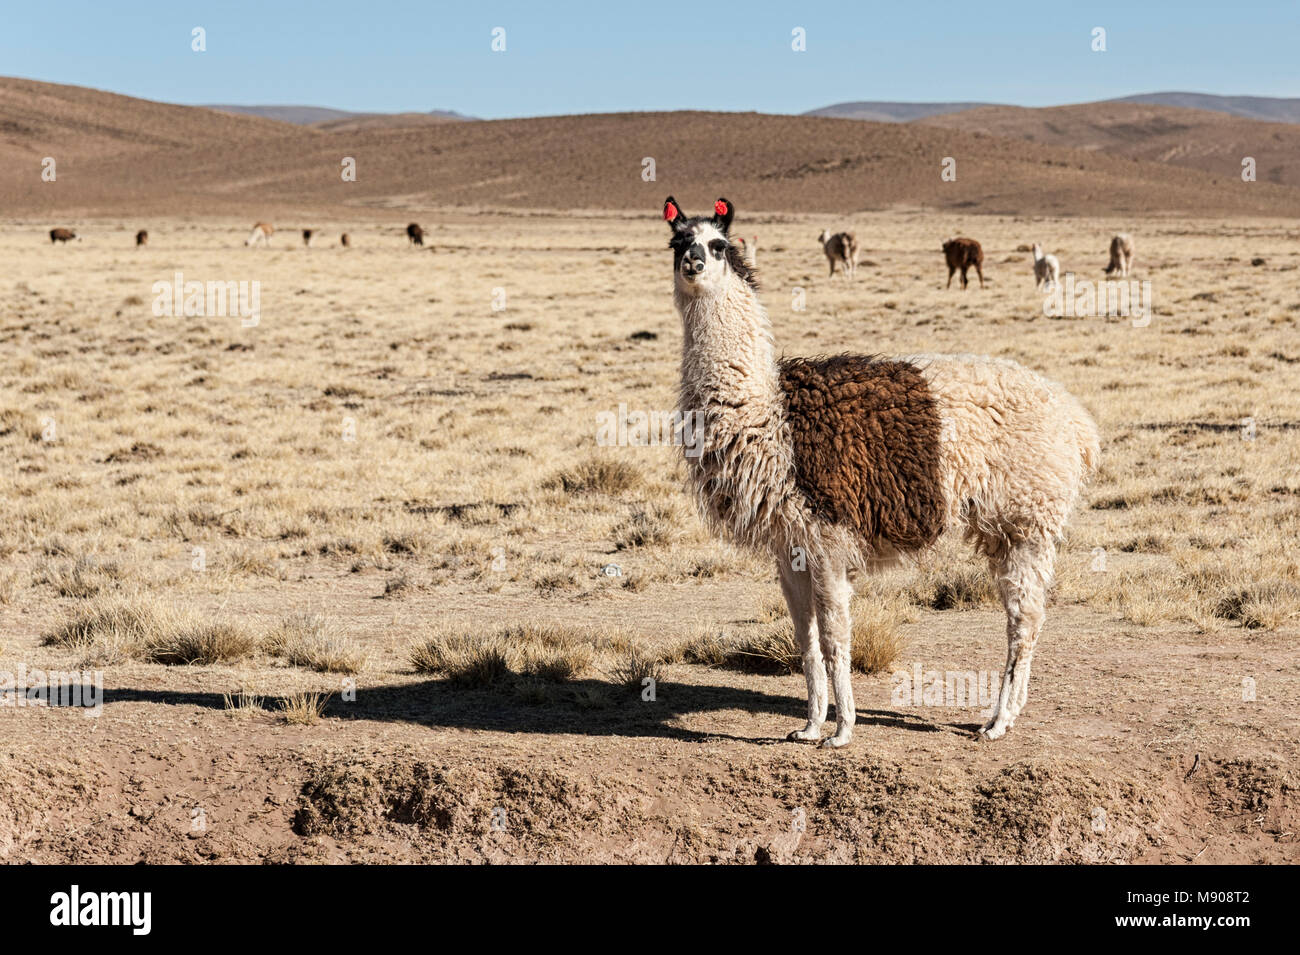 A group of llamas (alpaca) grazing in the highlands in the beautiful landscape of the Andes Mountains - Bolivia, - Stock Image